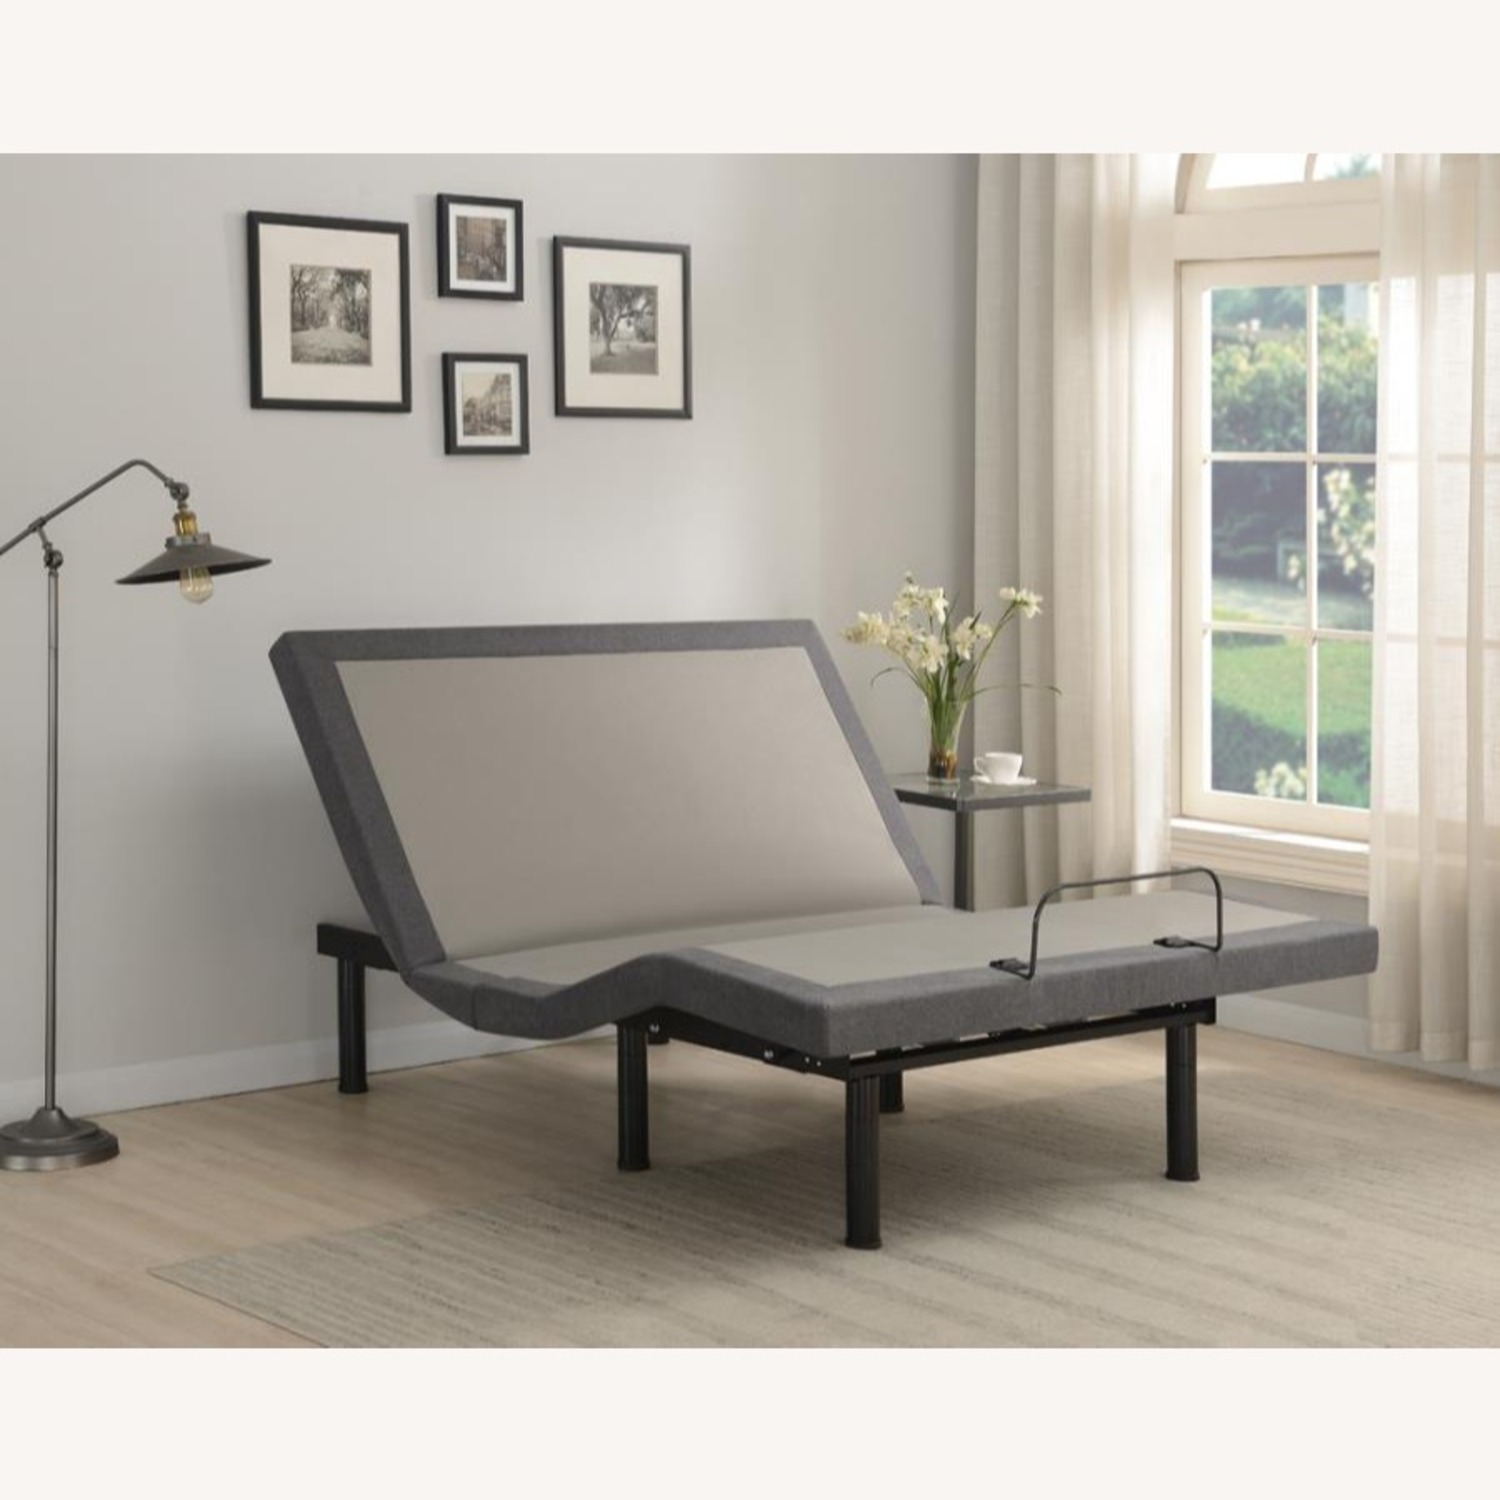 Adjustable Twin XL Bed Base In Grey Fabric - image-13